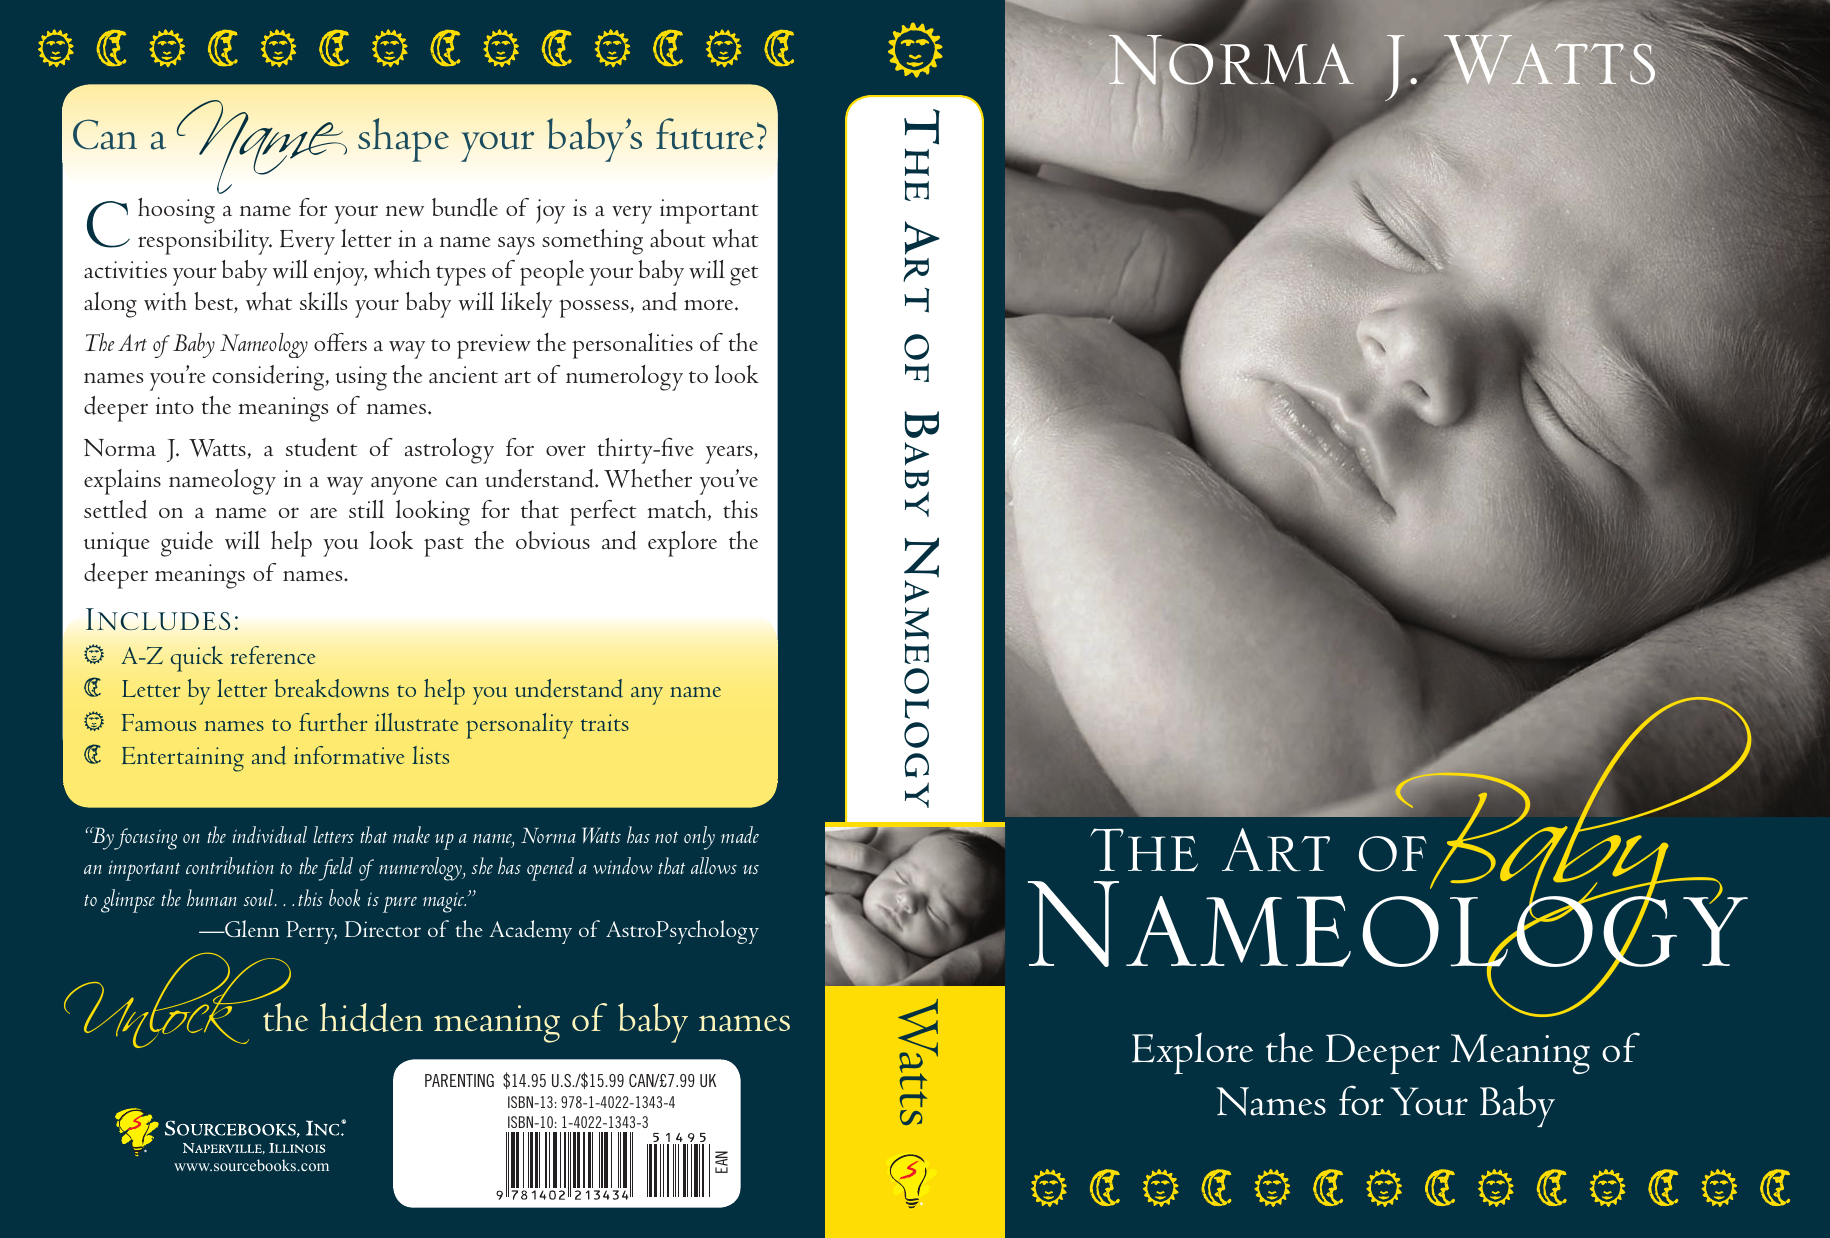 Norma Watts - The The Art of Baby Nameology- Explore the Deeper Meaning of  Names for Your Baby (2008 Sourcebooks Inc.)